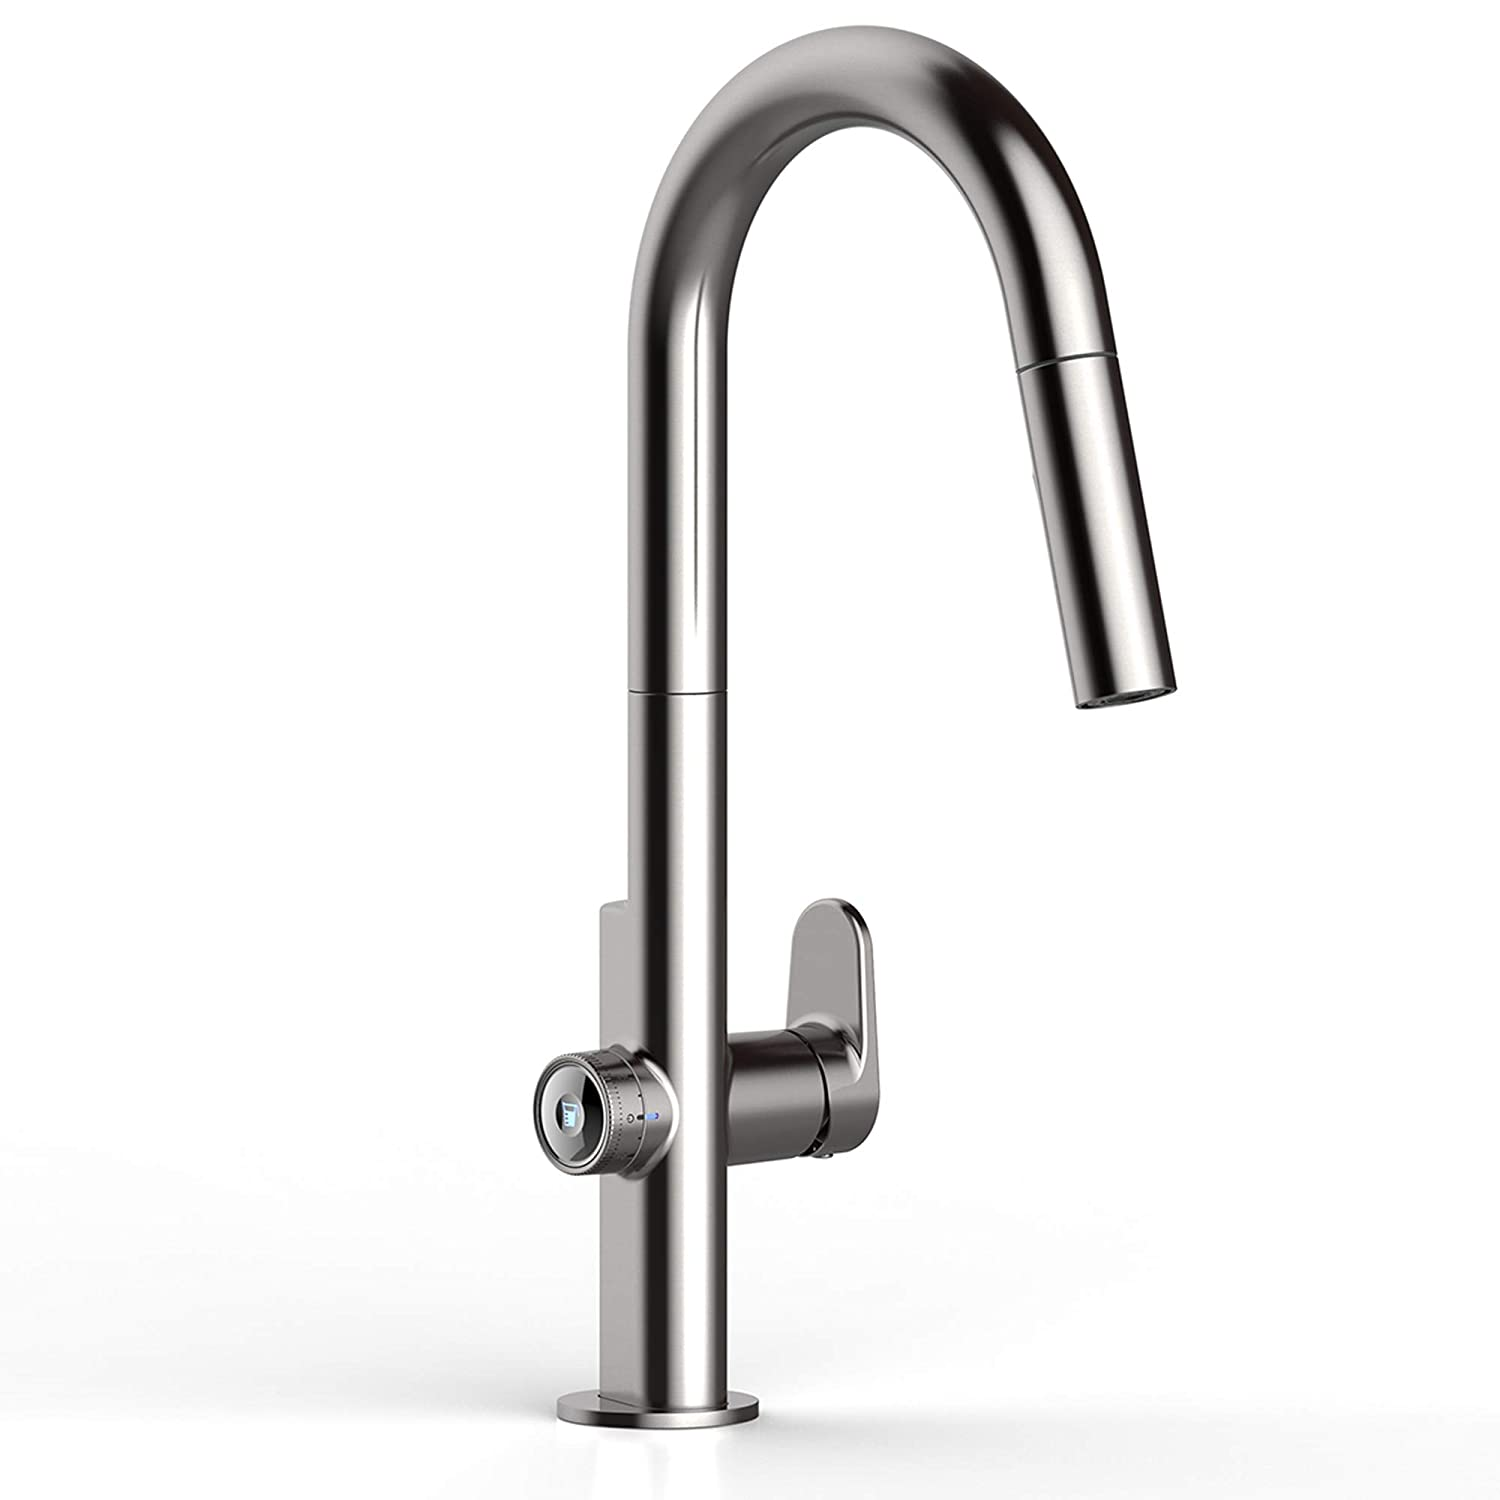 American Standard 4931360.075 Beale Measurefill Touch Kitchen Faucet, Stainless Steel